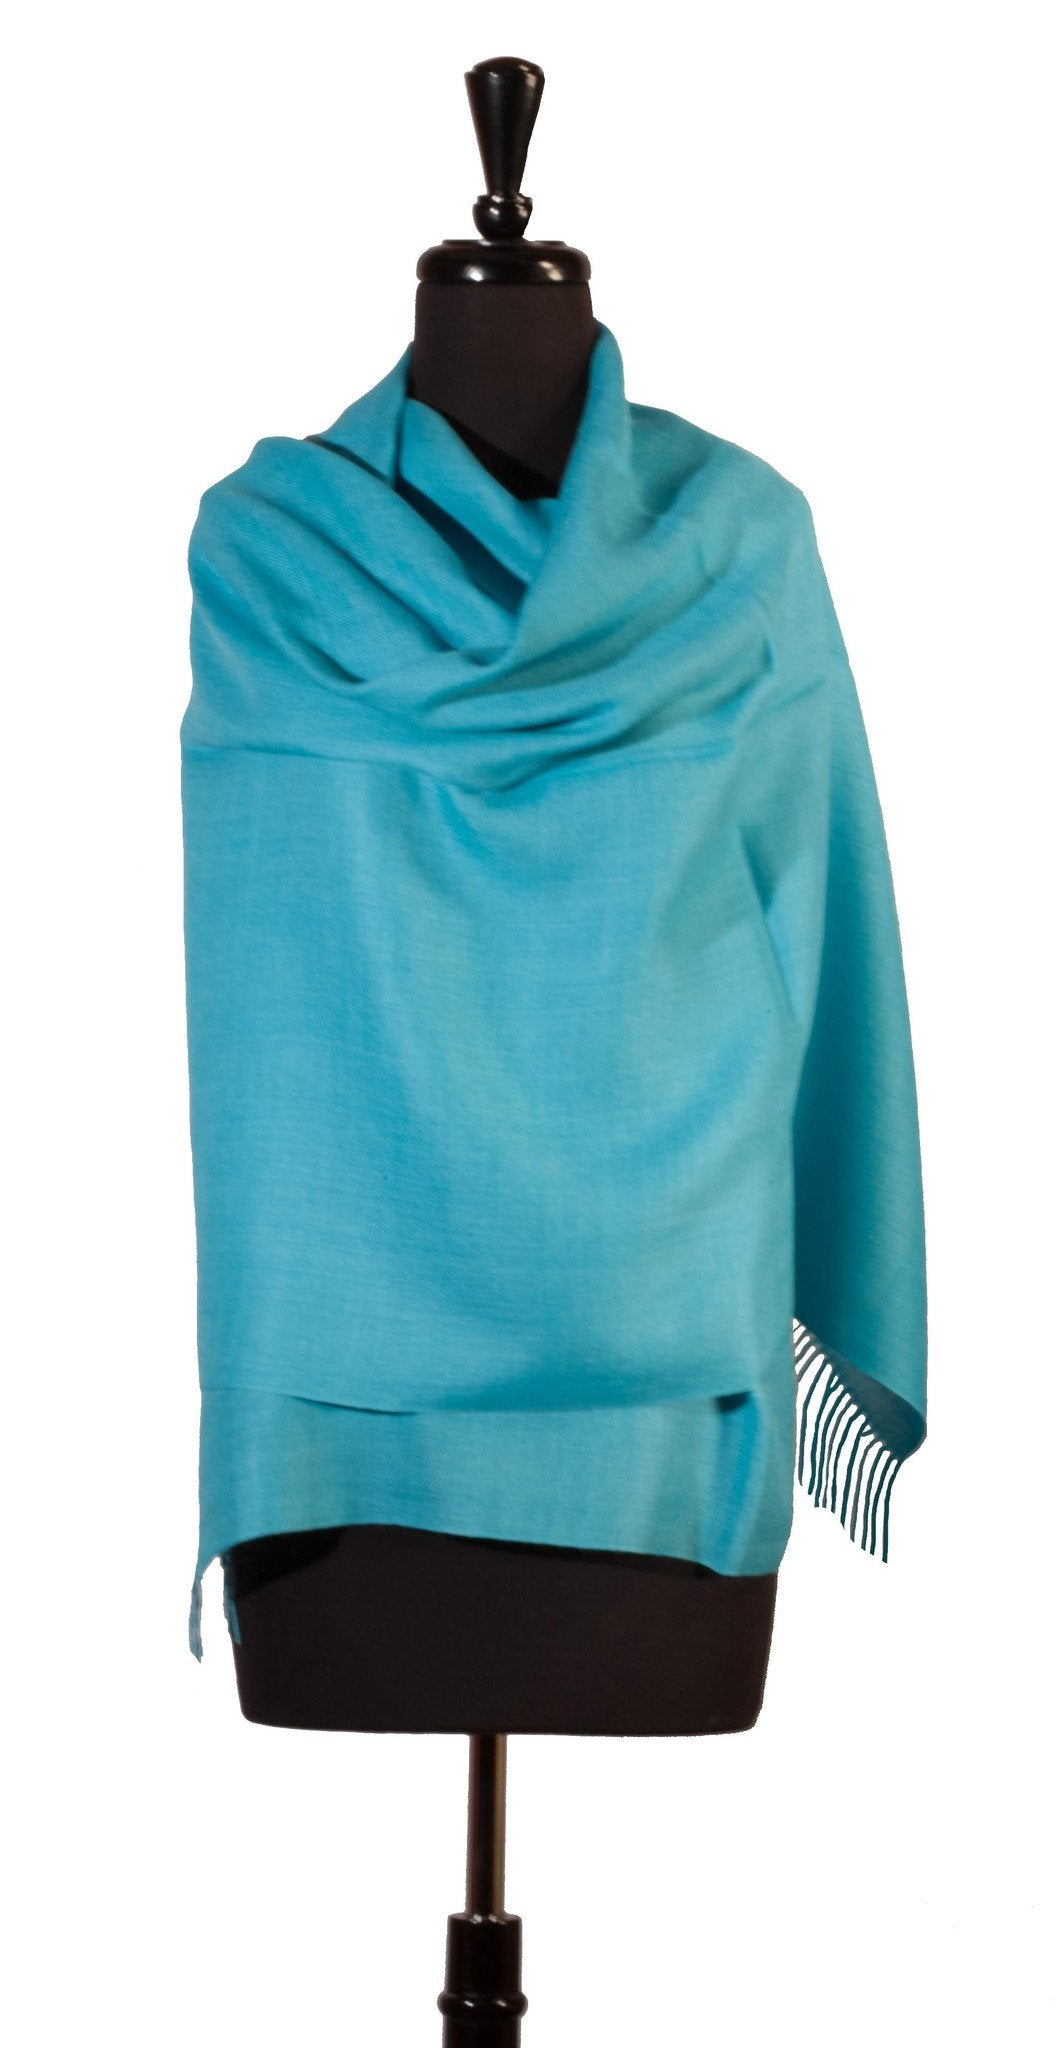 Baby Alpaca & Silk Shawl in Solid Color - Aquamarine - Qinti - The Peruvian Shop